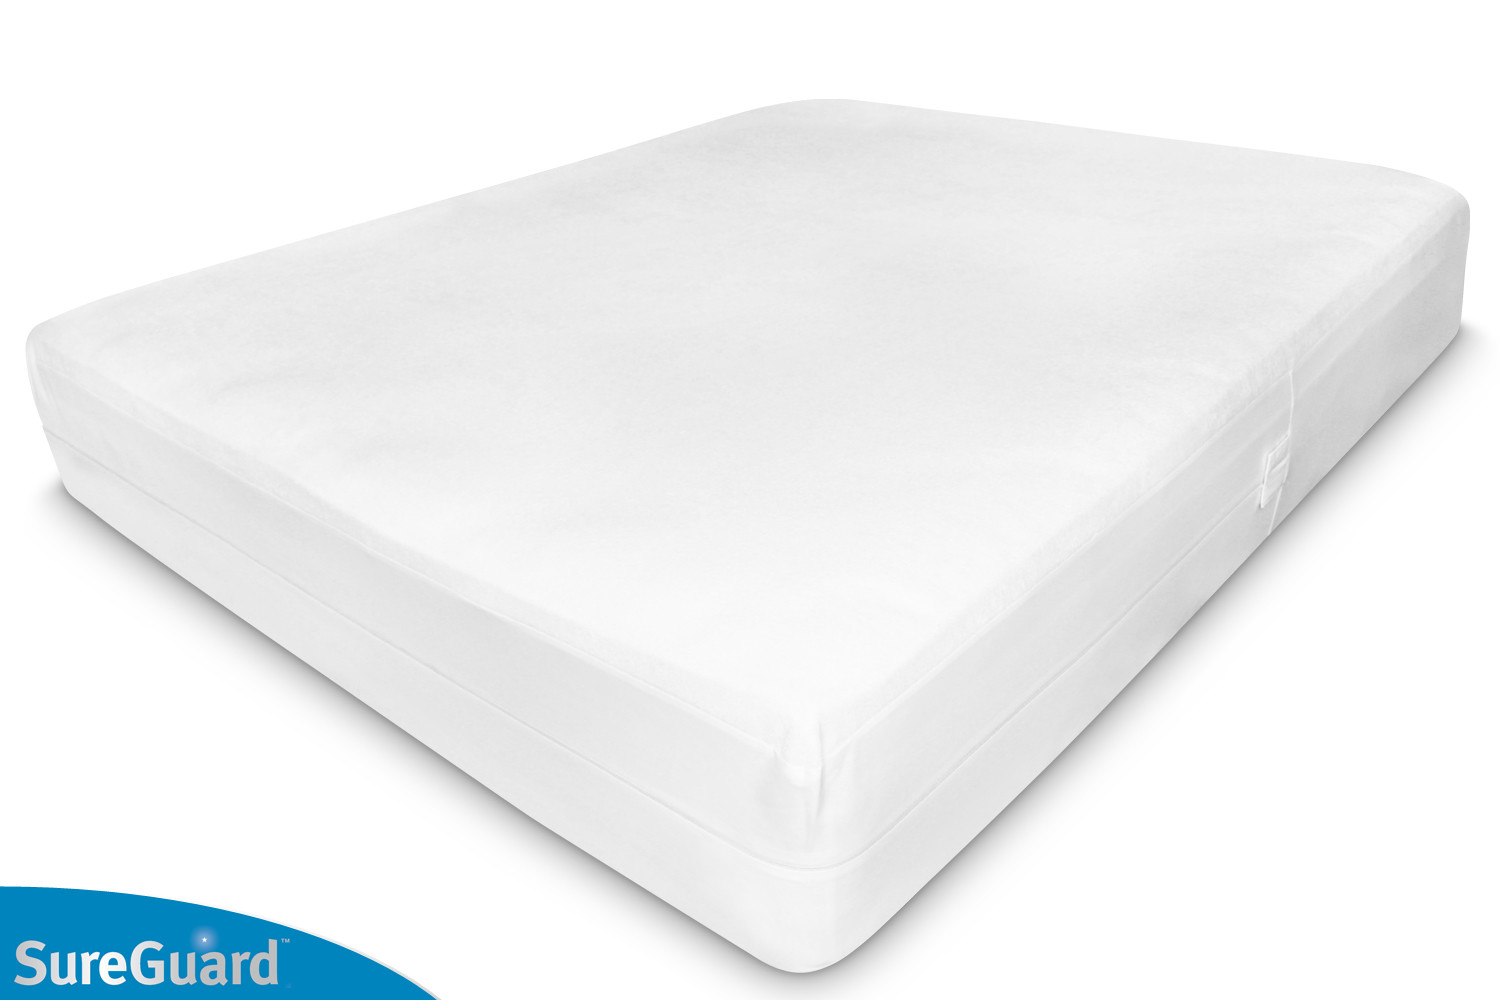 Sureguard Mattress Encasements Sureguard Mattress Protectors